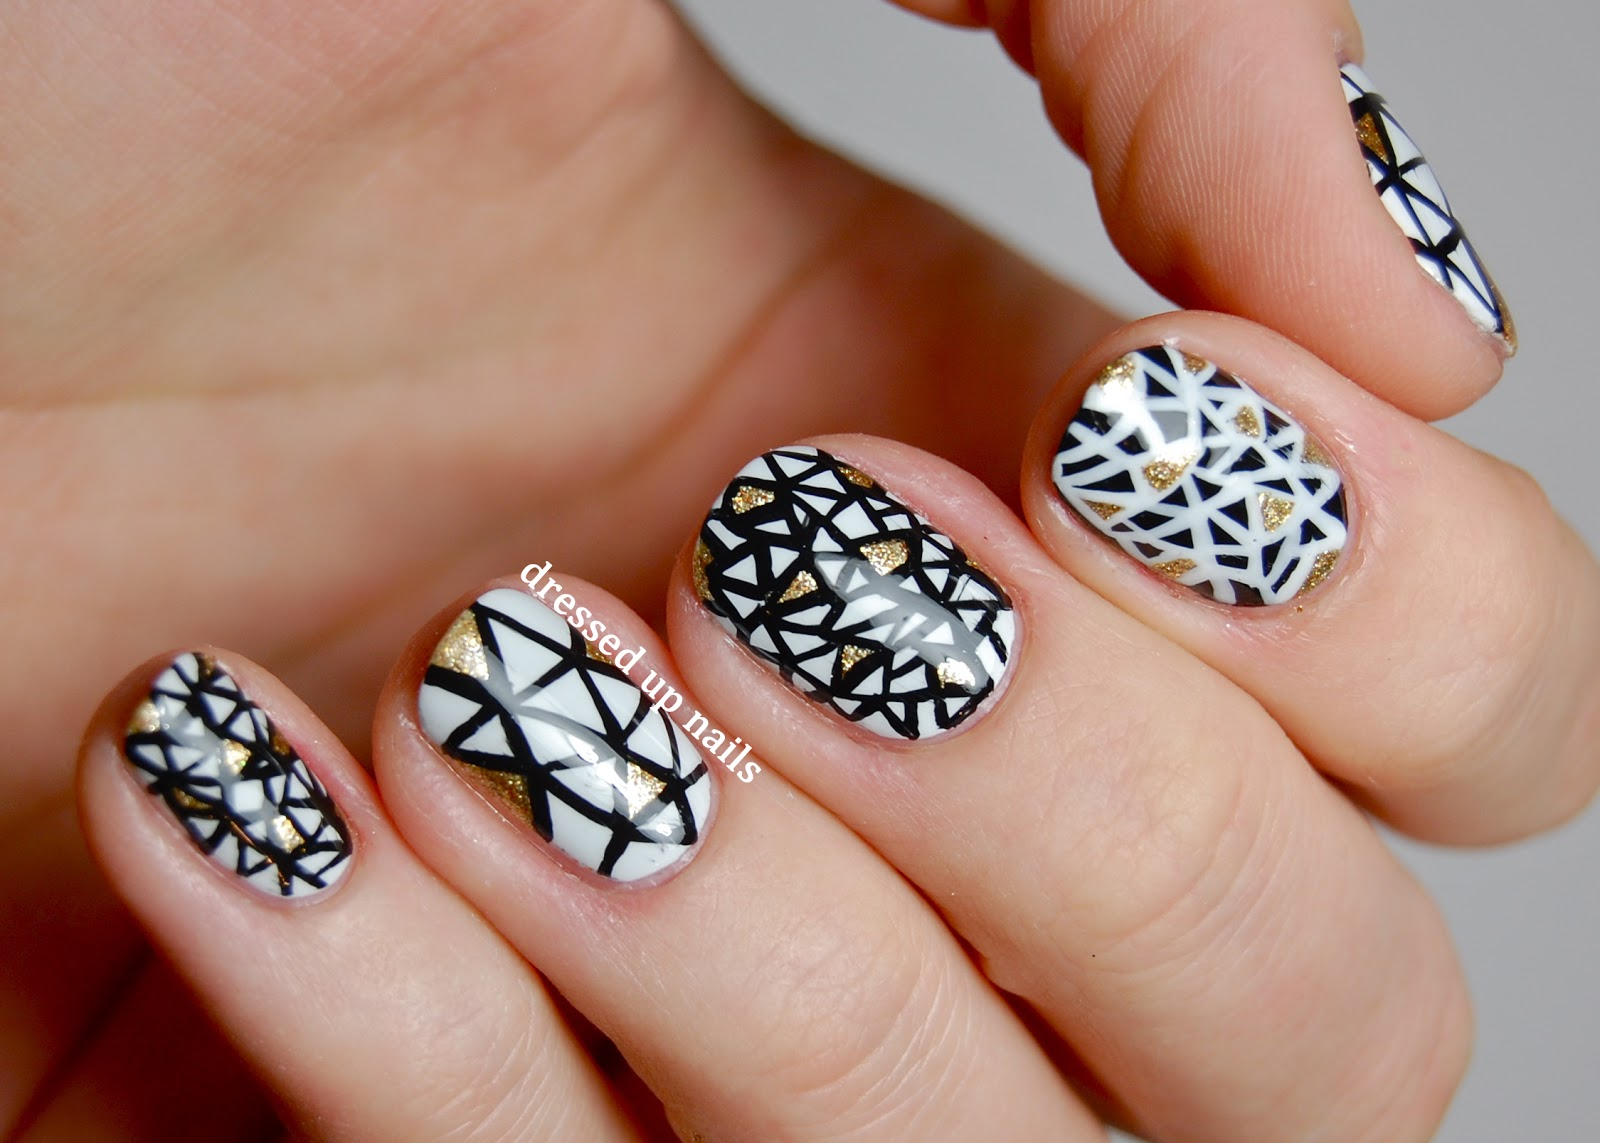 Nail Designs & 30 Nail Polish Tips